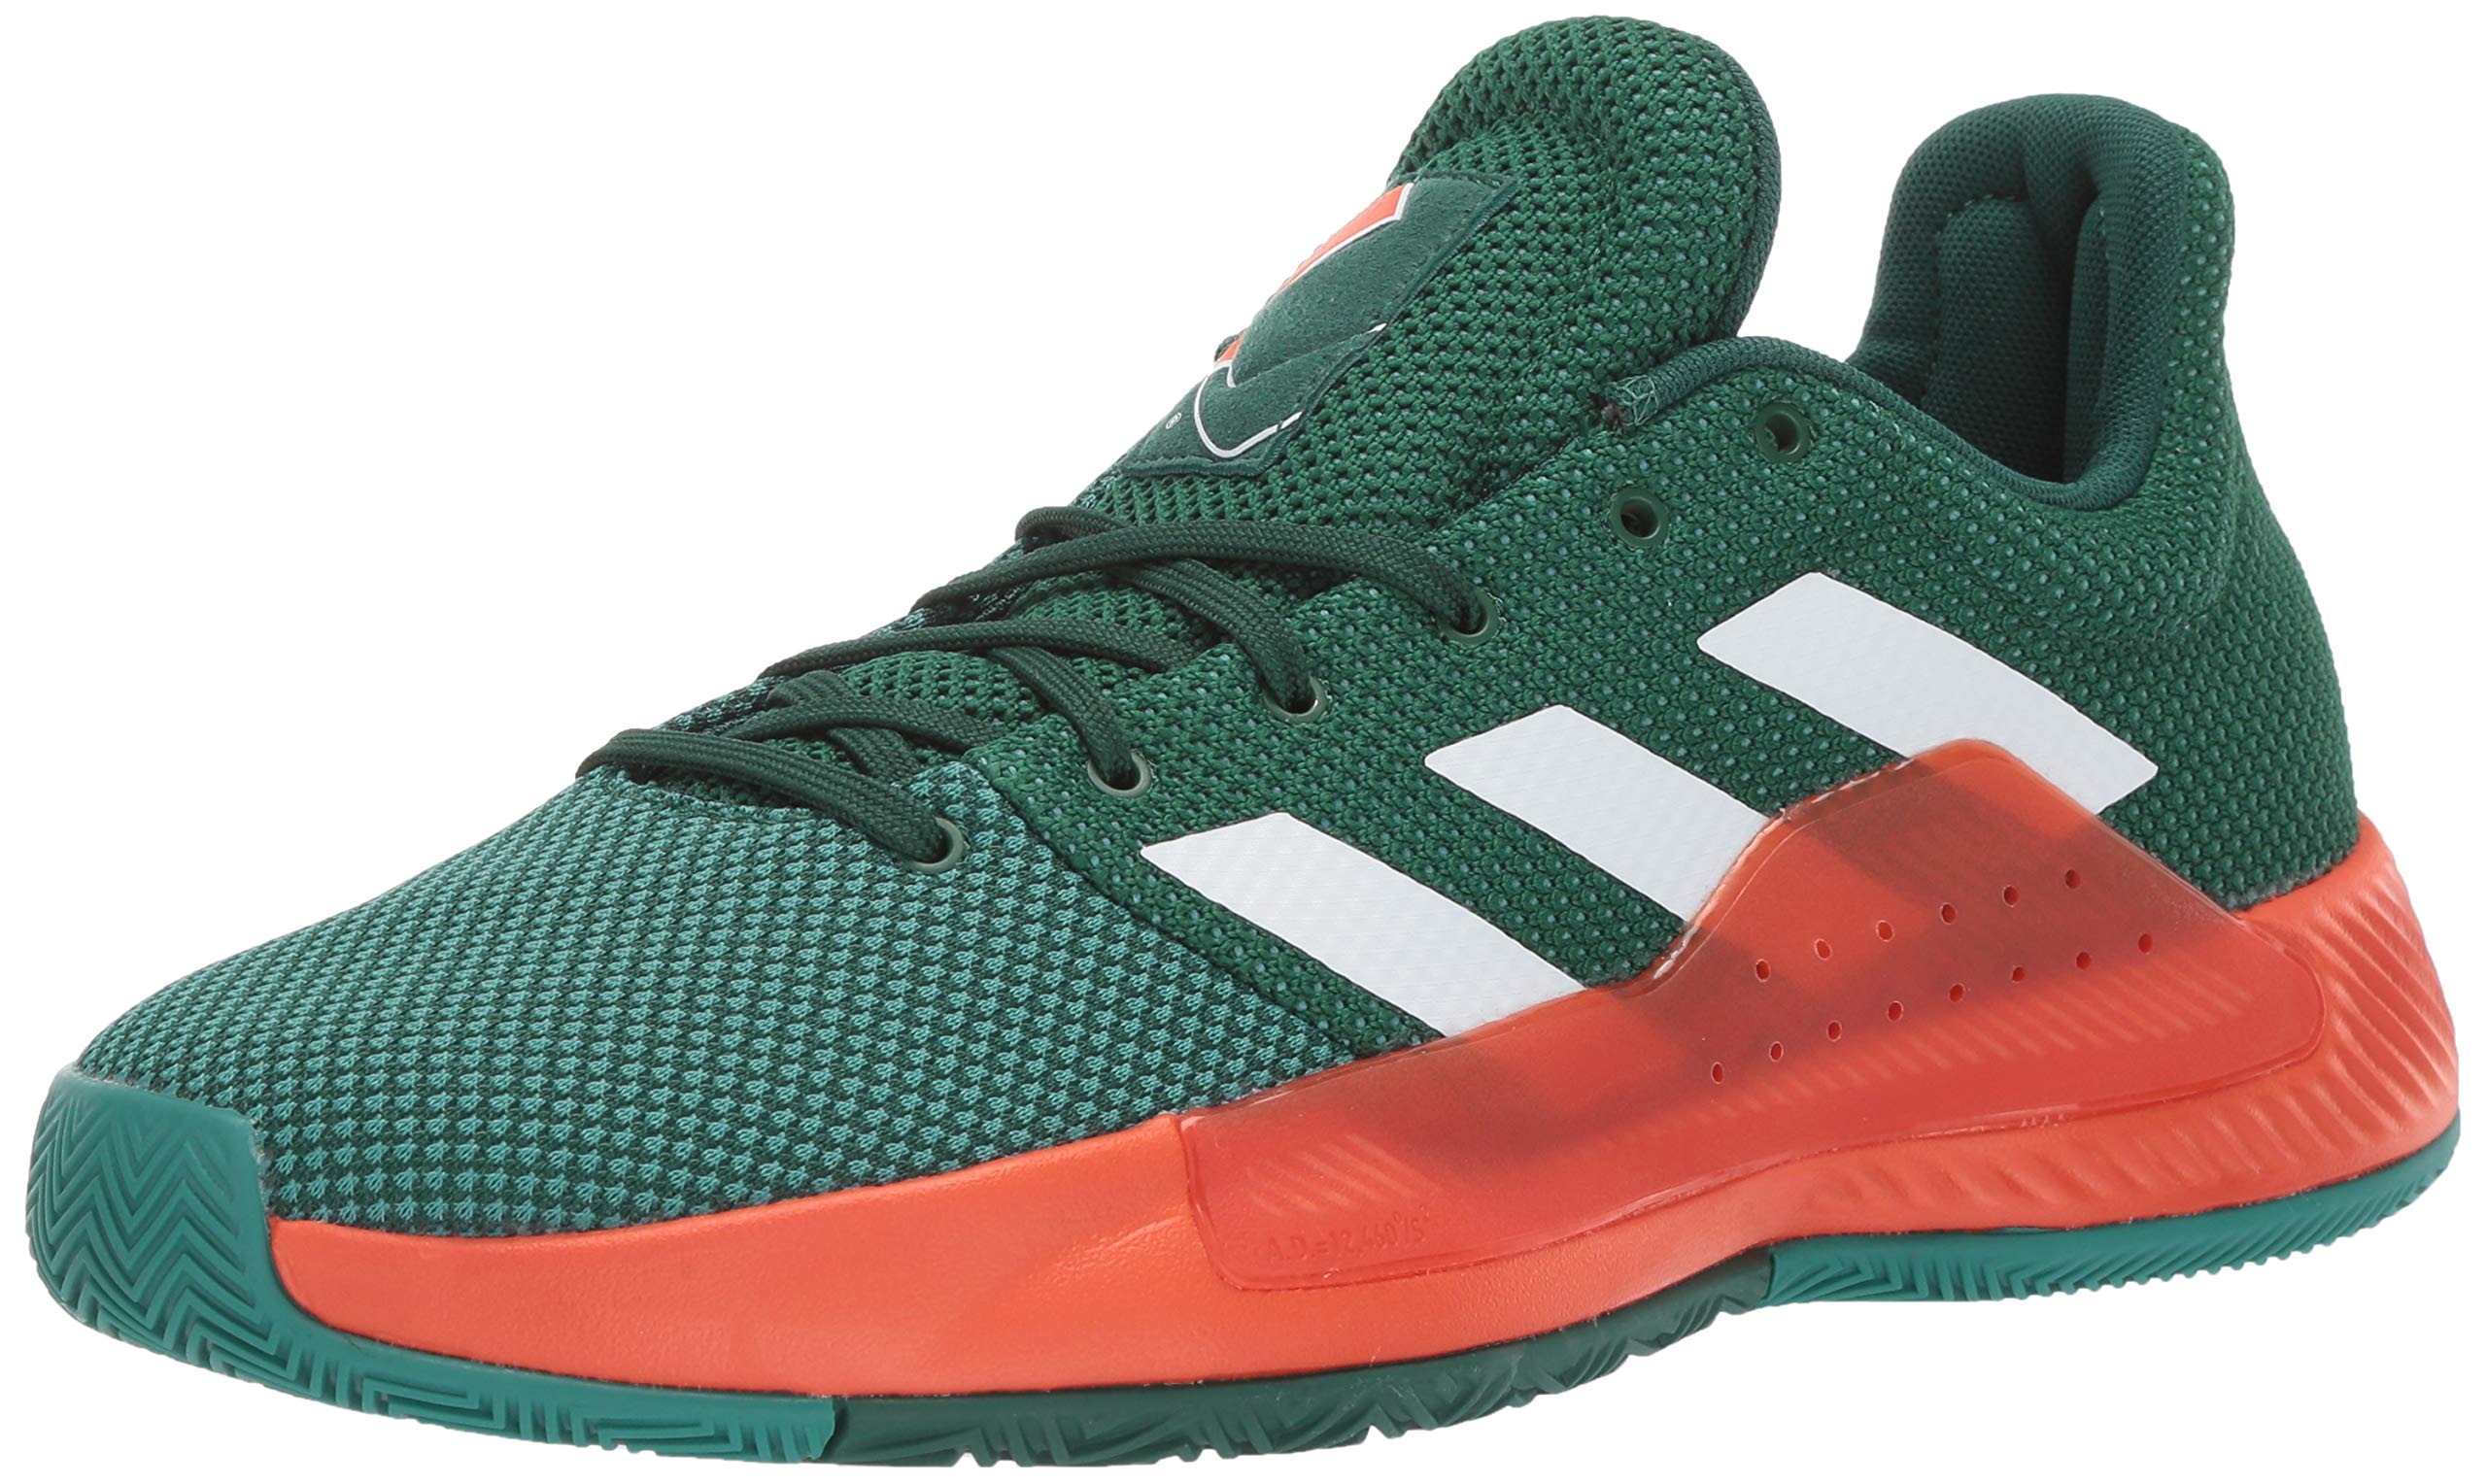 adidas Men's Pro Bounce Madness Low 2019, Dark White/Active Green, 11 M US